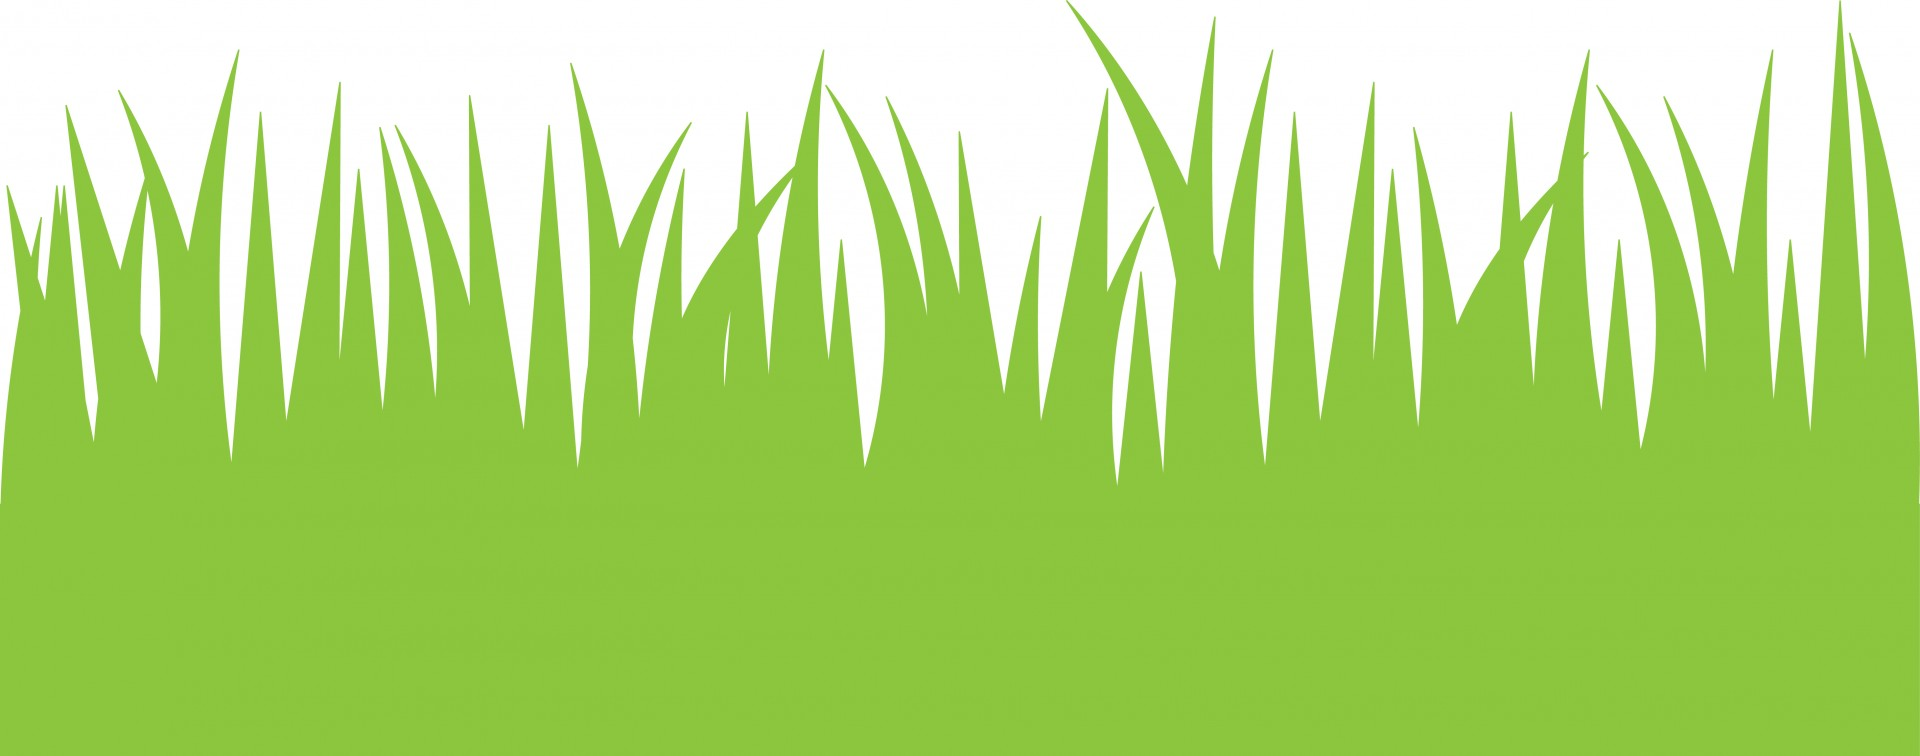 Grass clipart. Green free stock photo